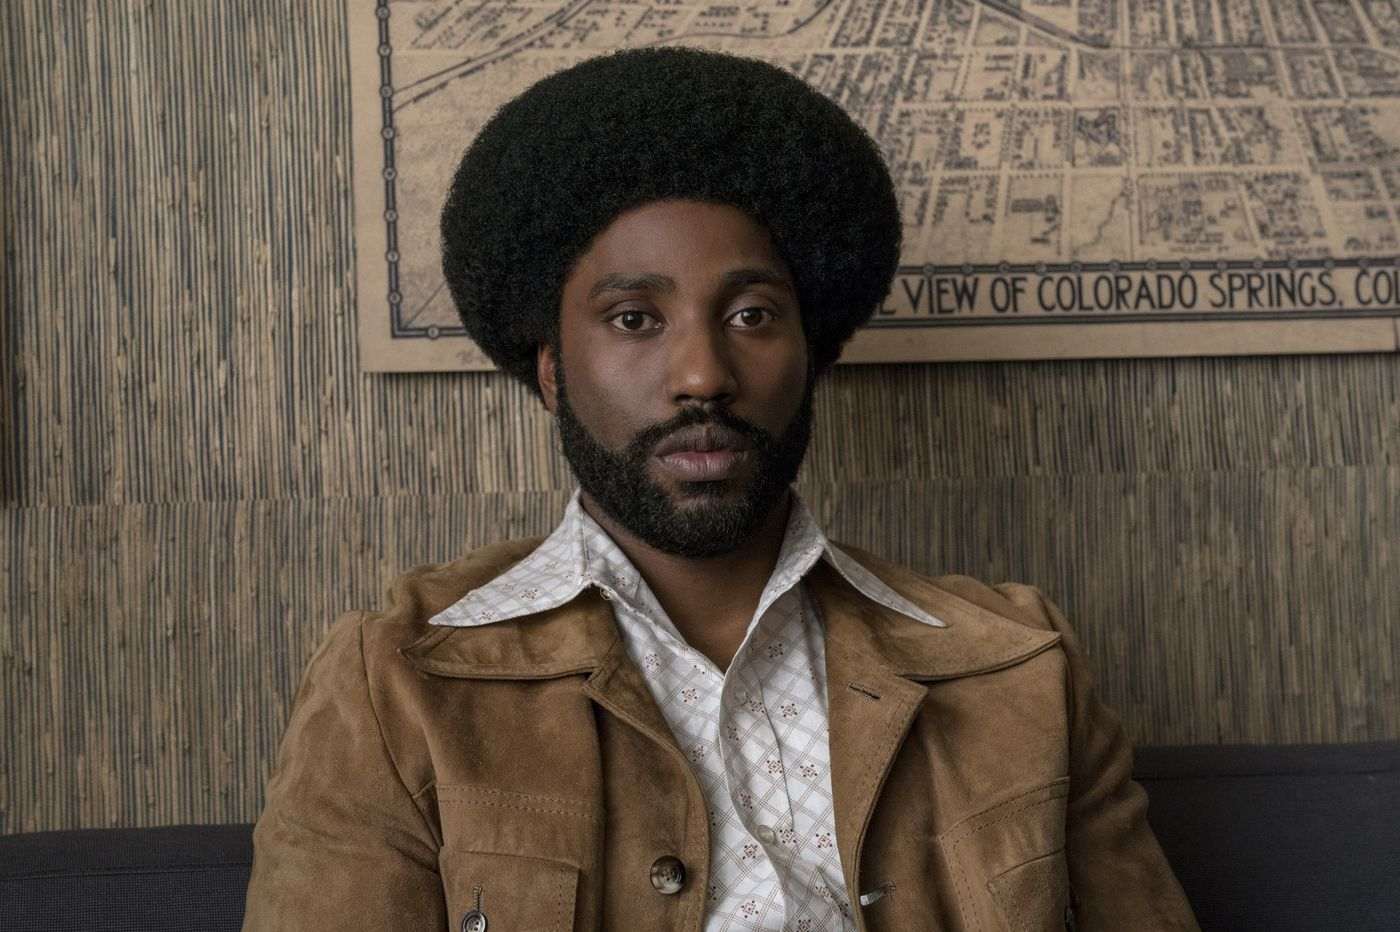 'BlacKkKlansman's' star John David Washington on what it's like to compete with his dad Denzel at the box office